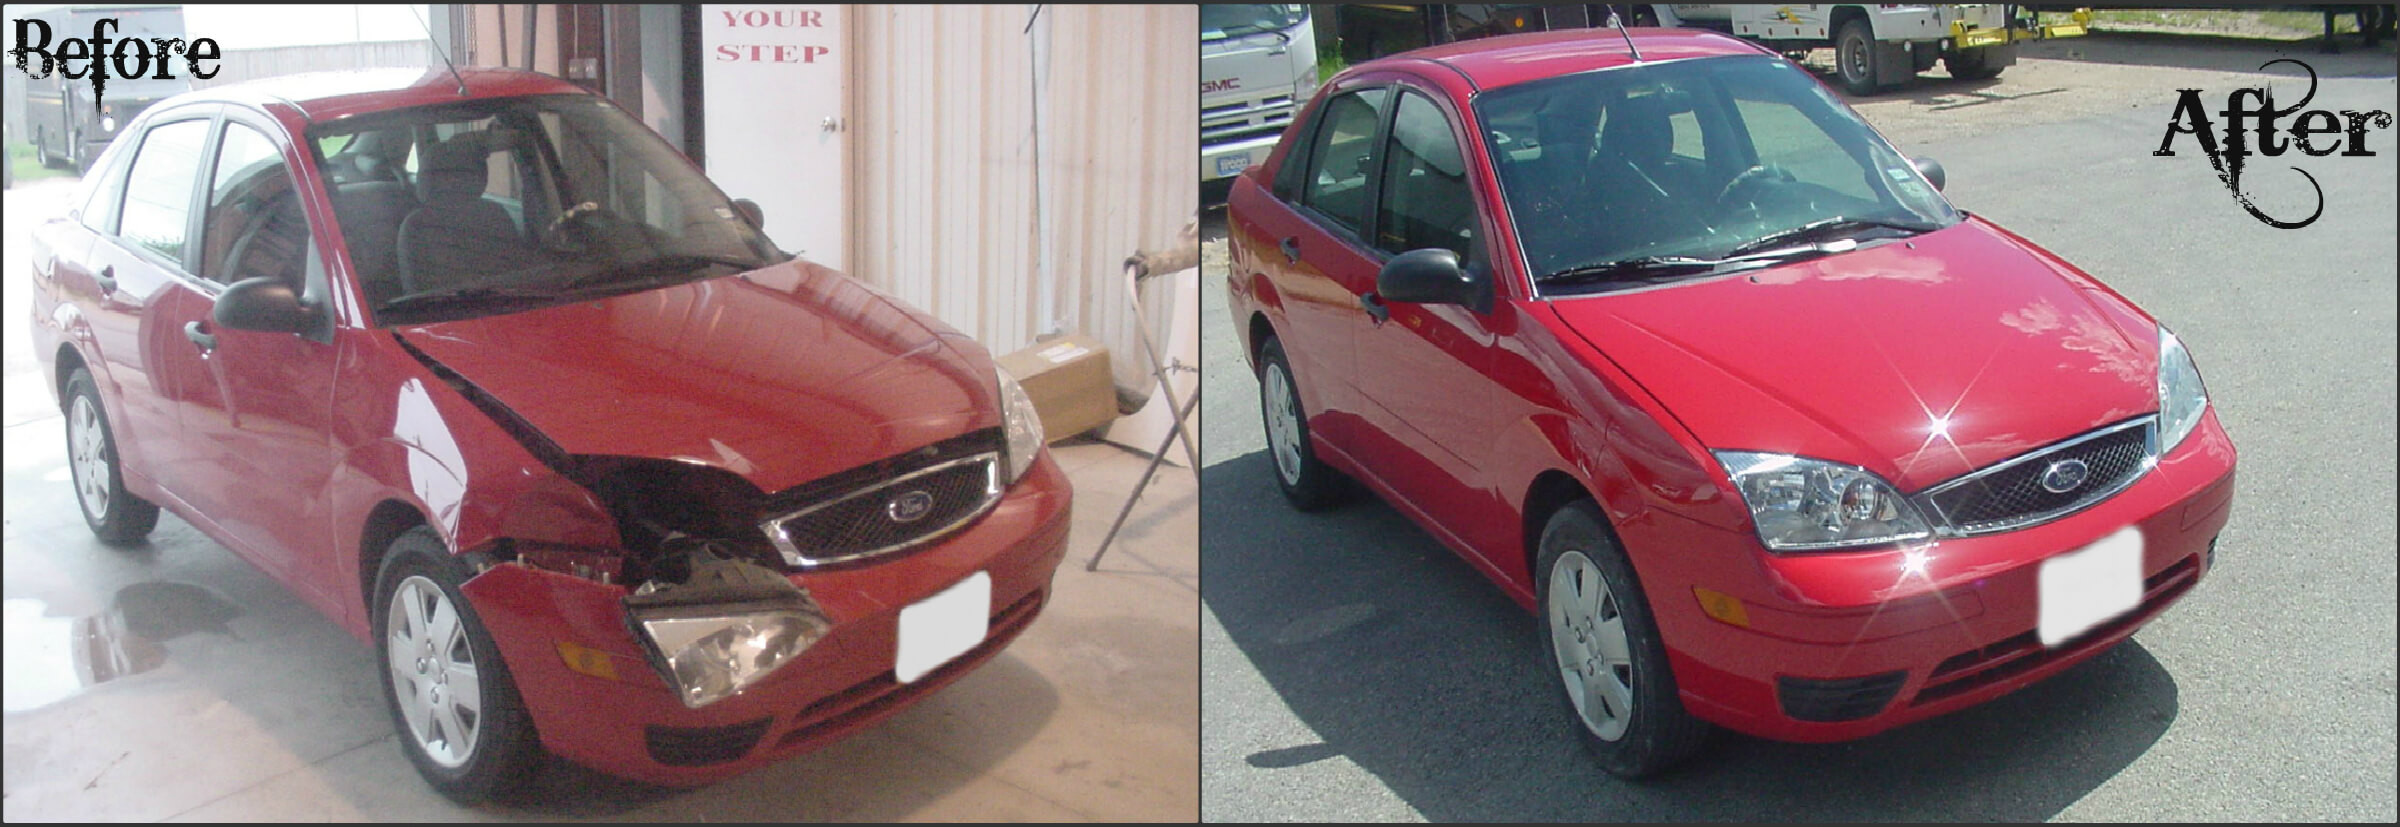 car before after